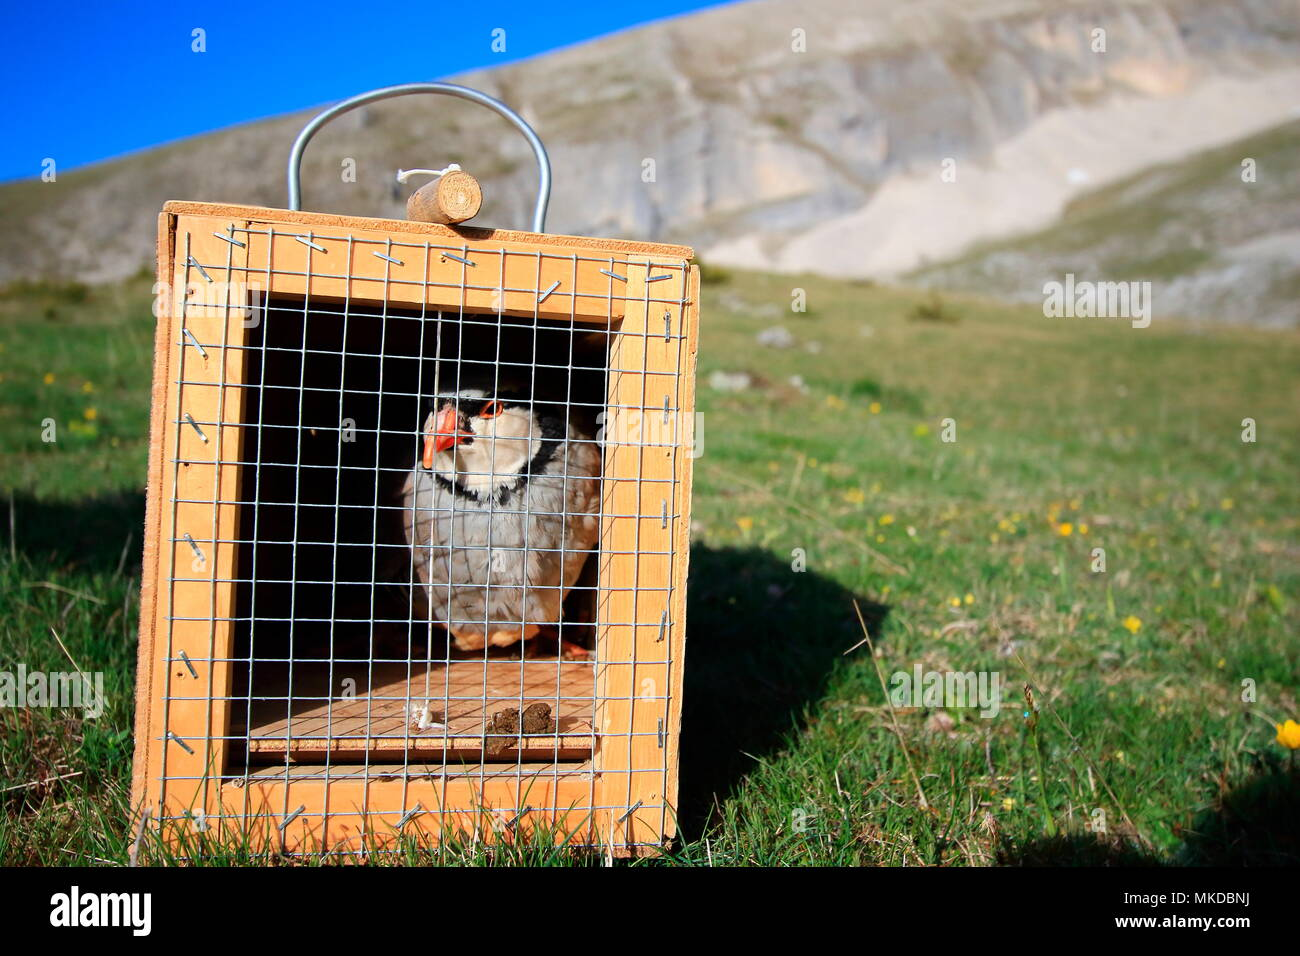 Study of the National Office of Hunting and Wildlife on the partridge bartavelle (Alectoris graeca). Using a caller to capture wild birds, Alps, France - Stock Image